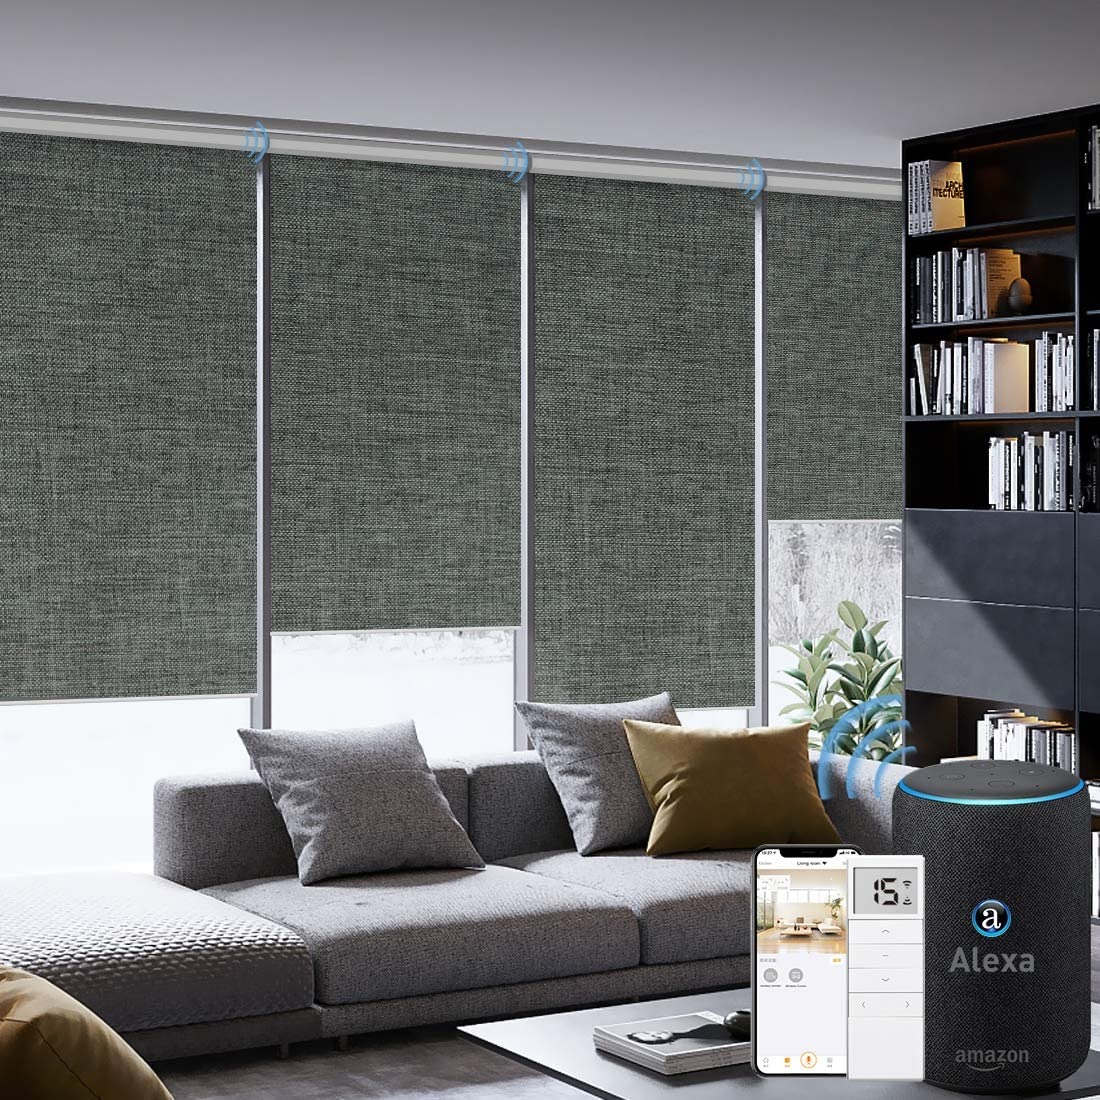 Graywind Motorized Roller Shades 100 Blackout Remote Alexa Voice Control Insulated Triple Weaved Fabric Window Blinds with Valance for Smart Home Office, Customized Size, Dark Grey